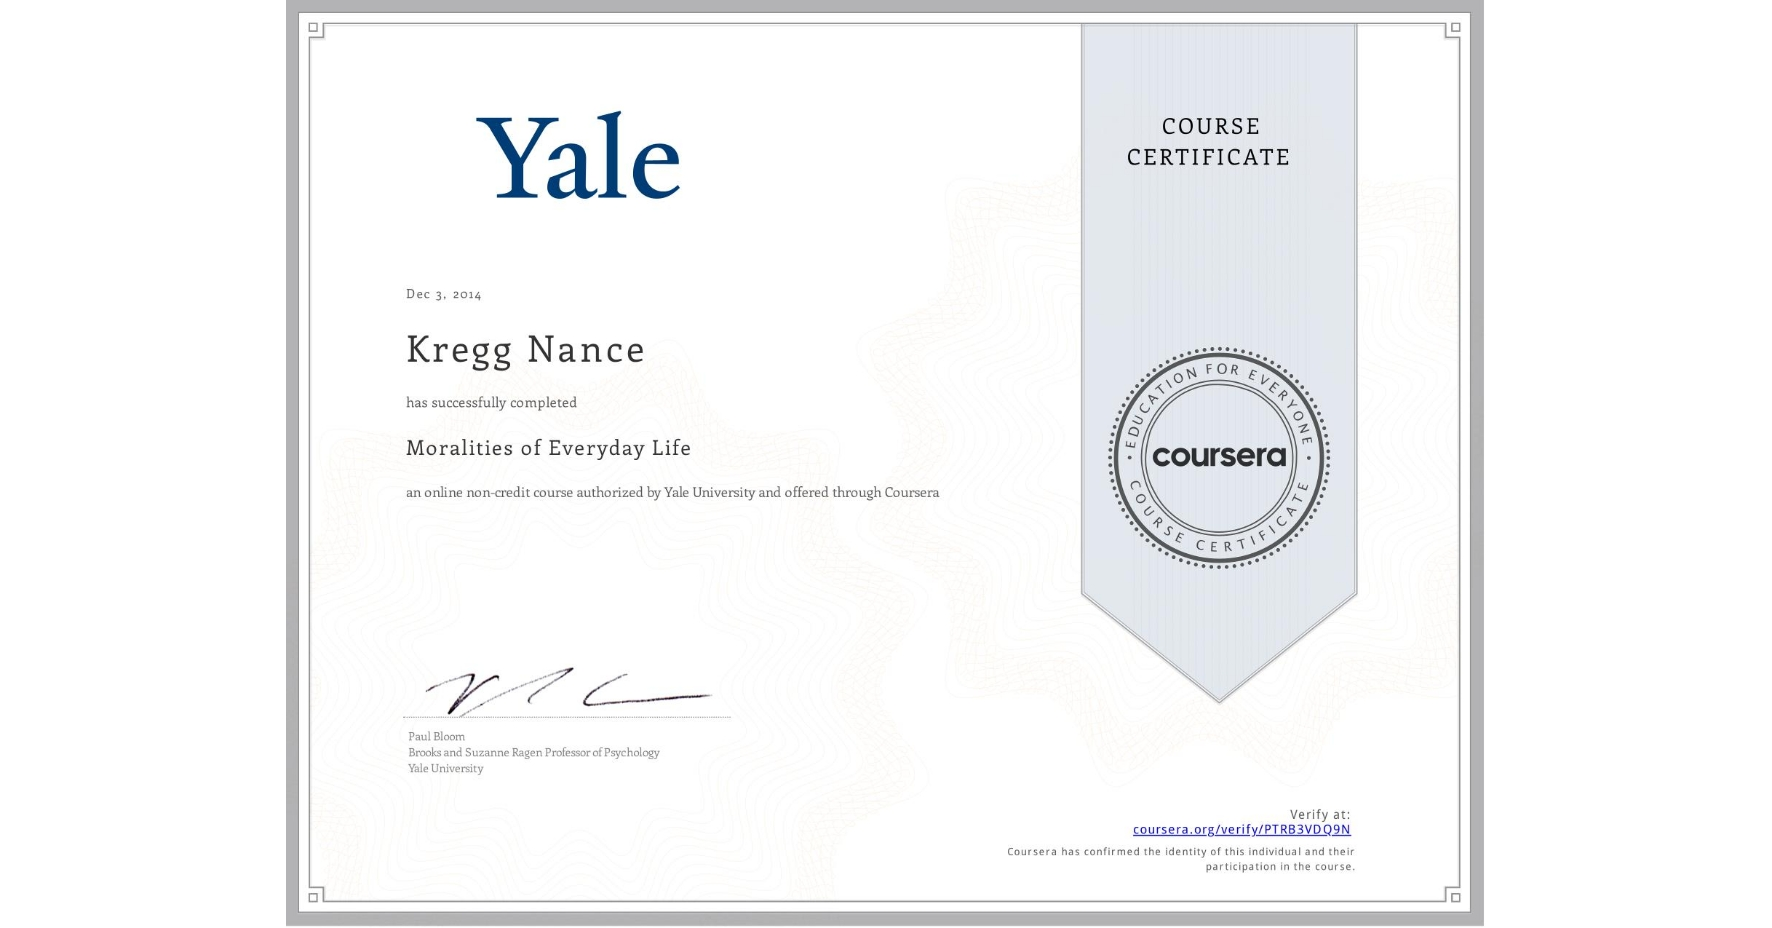 View certificate for Kregg Nance, Moralities of Everyday Life, an online non-credit course authorized by Yale University and offered through Coursera